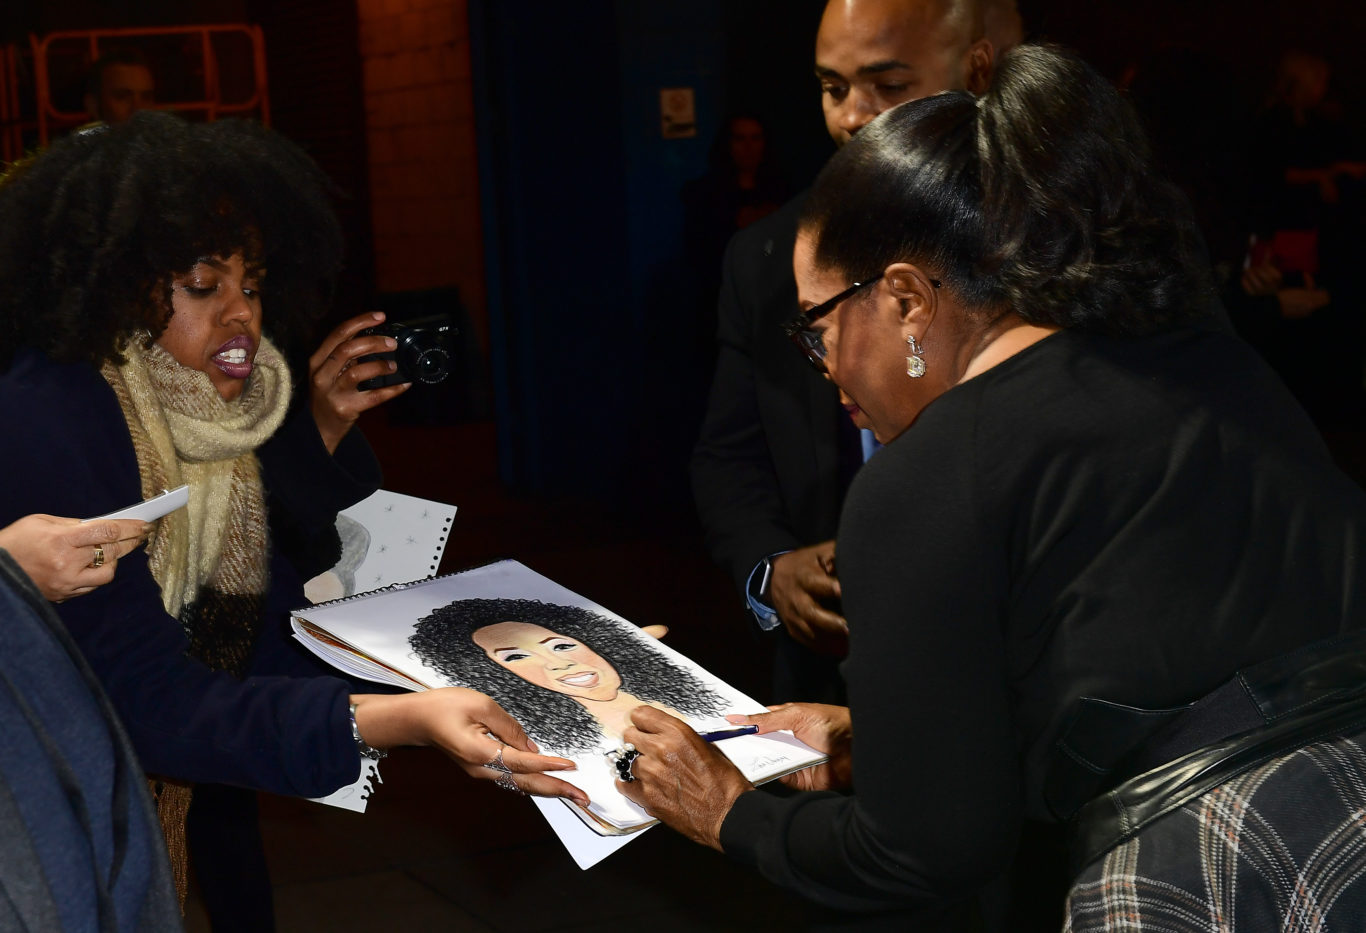 Oprah Winfrey signs autographs for fans (Ian West/PA)